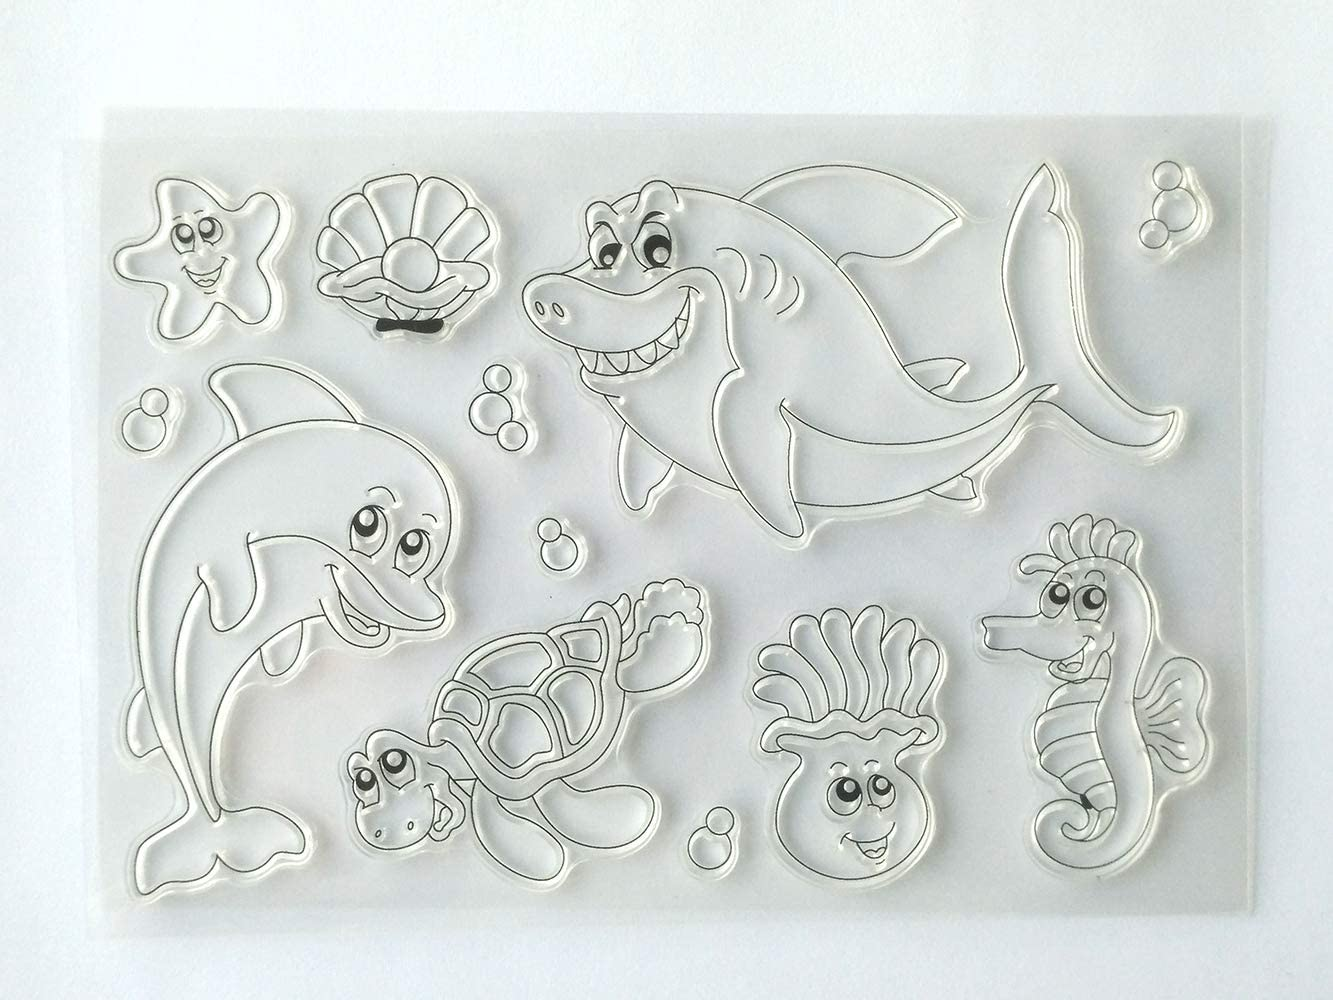 MaGuo Cartoon Sea Animal Clear Stamps Sharks Dolphins Turtles Hippocampus for Card Making Decoration Paper Craft DIY Scrapbooking